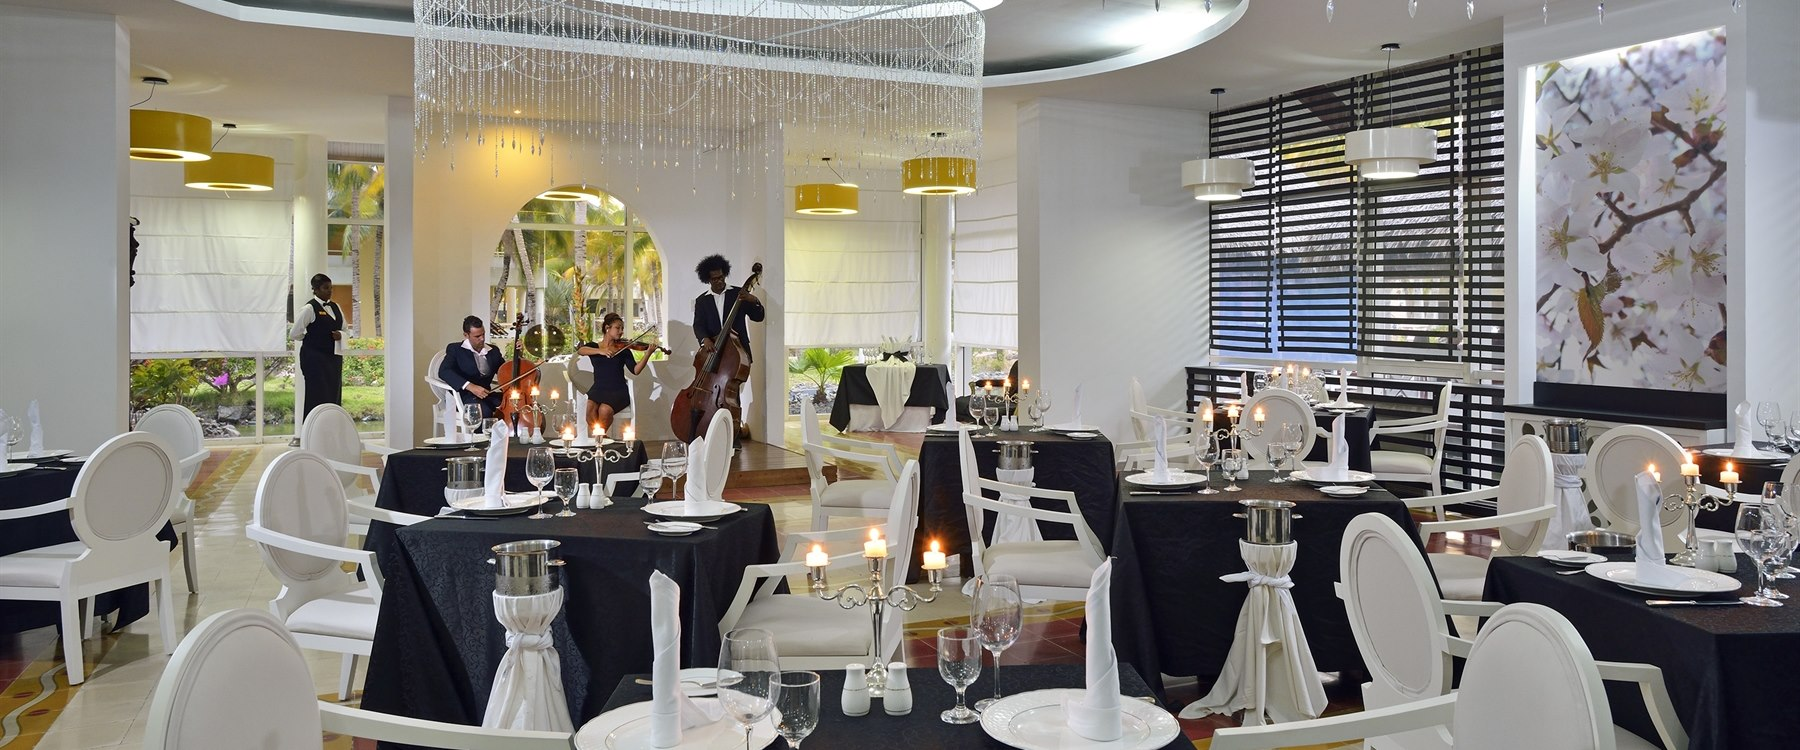 International Restaurant at Paradisus Varadero